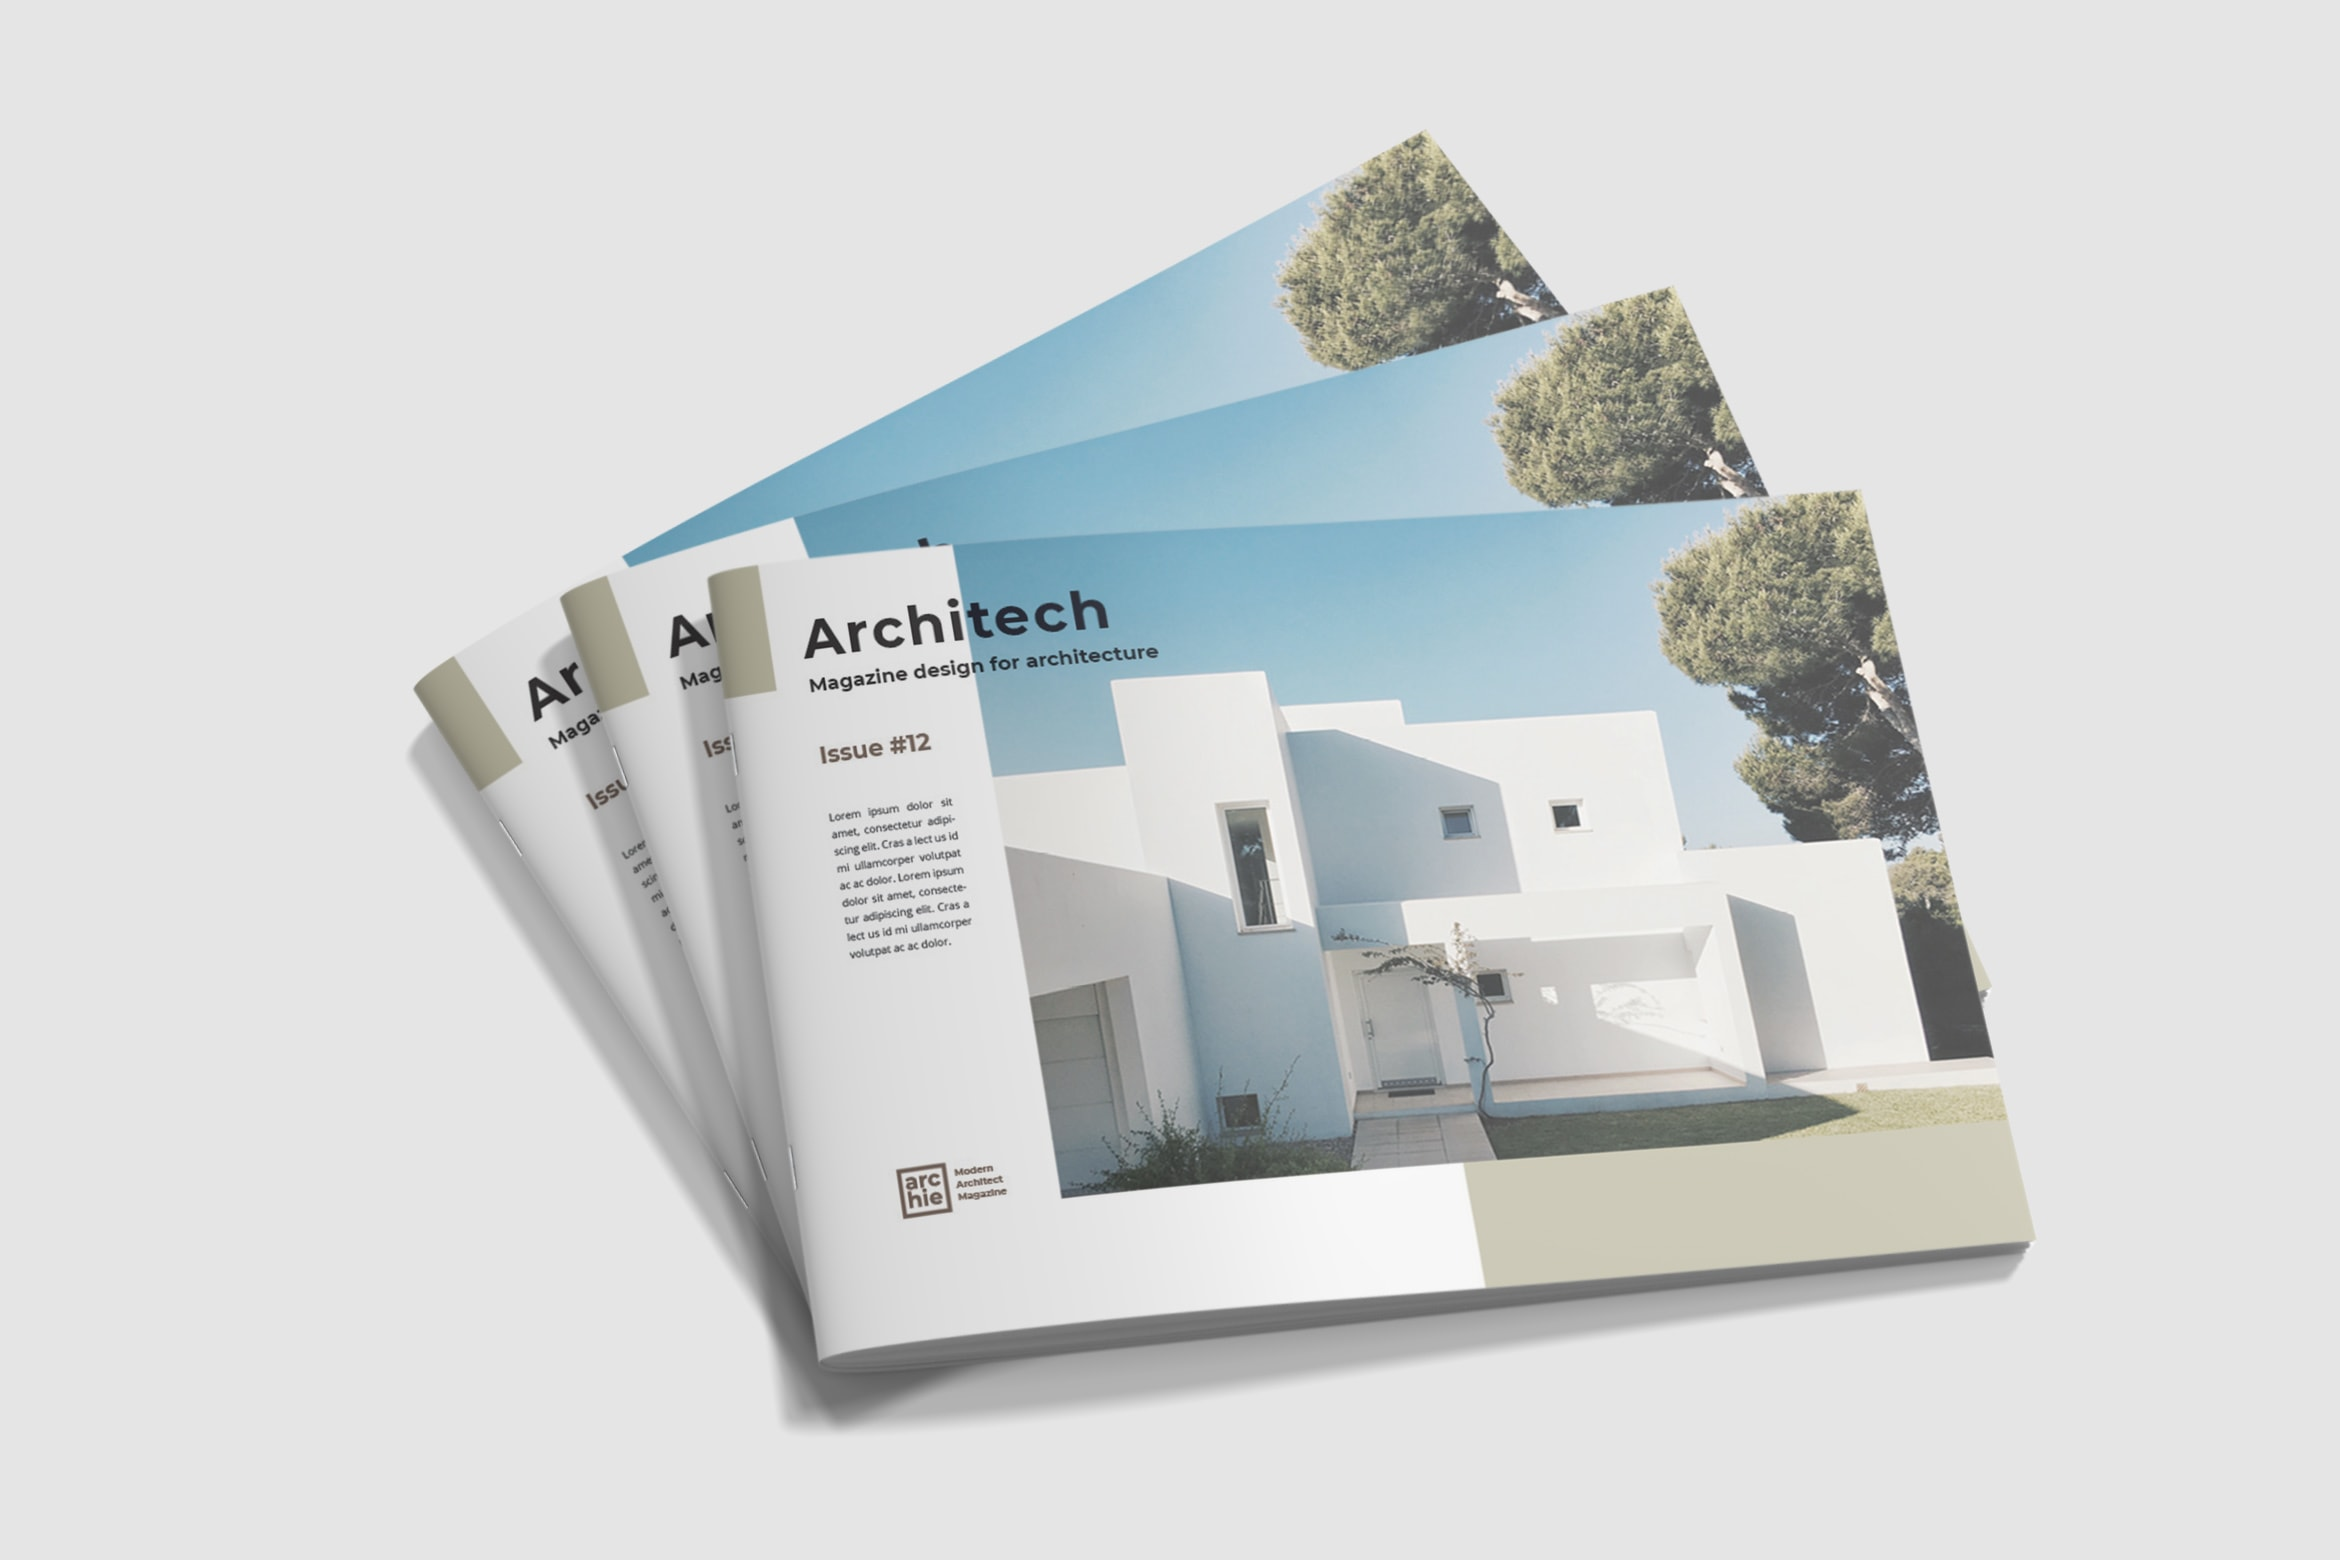 Lanscape Magazine - Architect Design